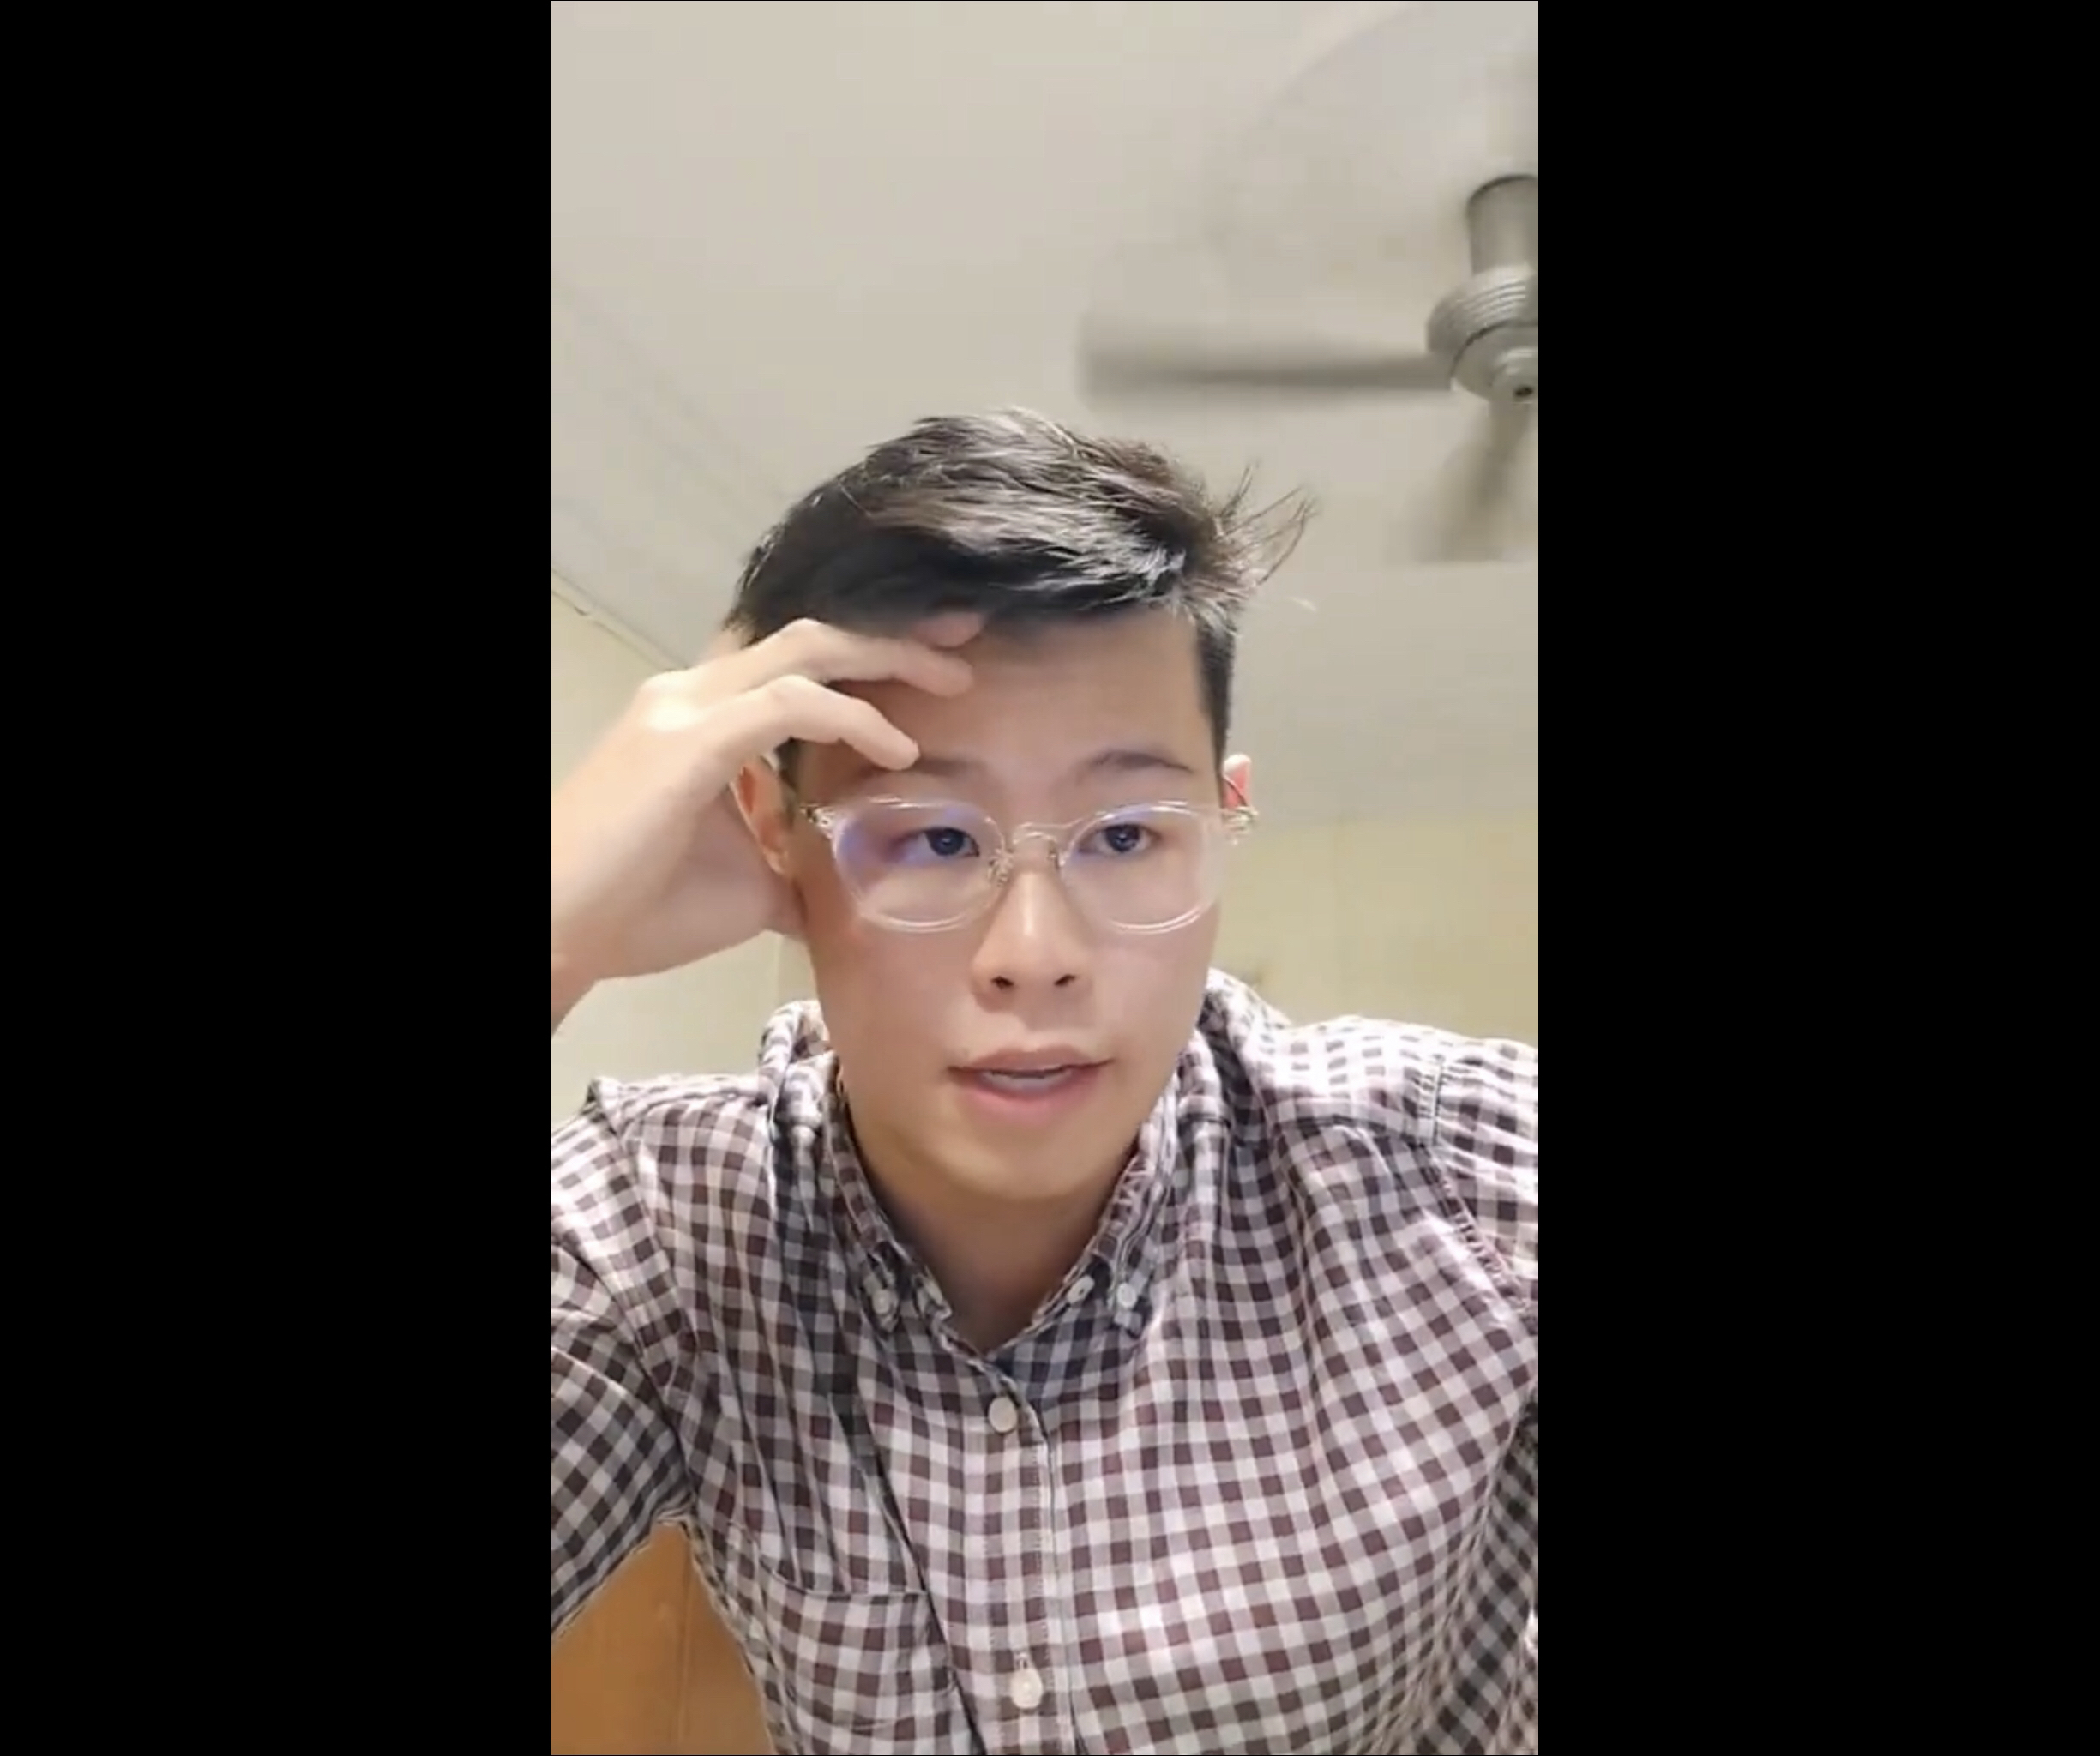 www.michigandaily.com: 'I do not need to be muzzled': recent Malaysian graduate alleges CSEAS unfairly cut promised U-M employment short